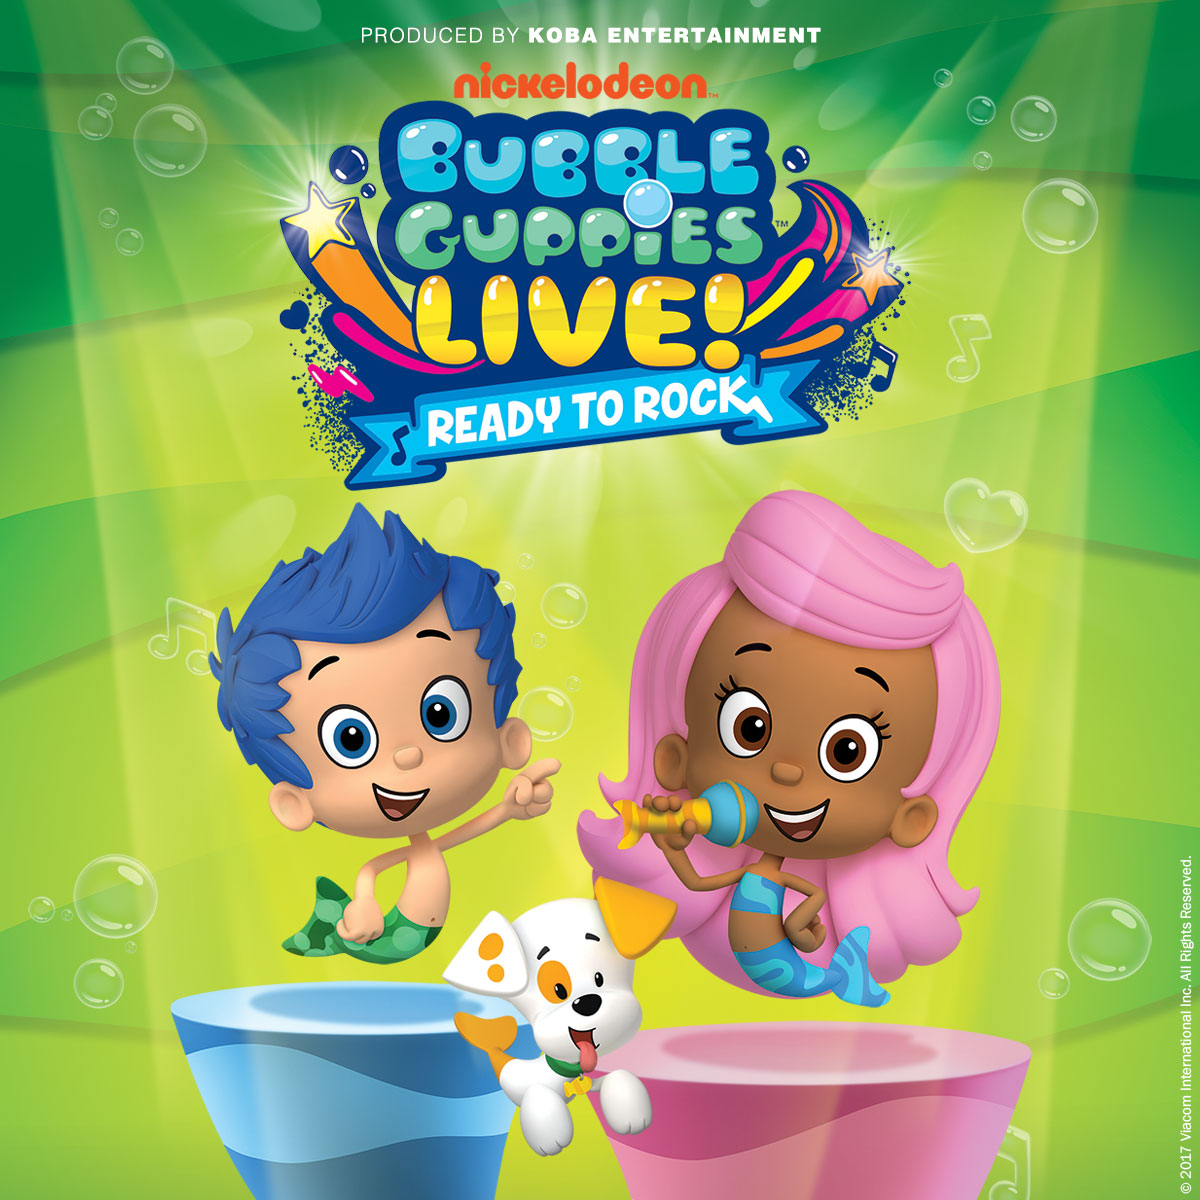 bubble guppies live ready to rock is on tour